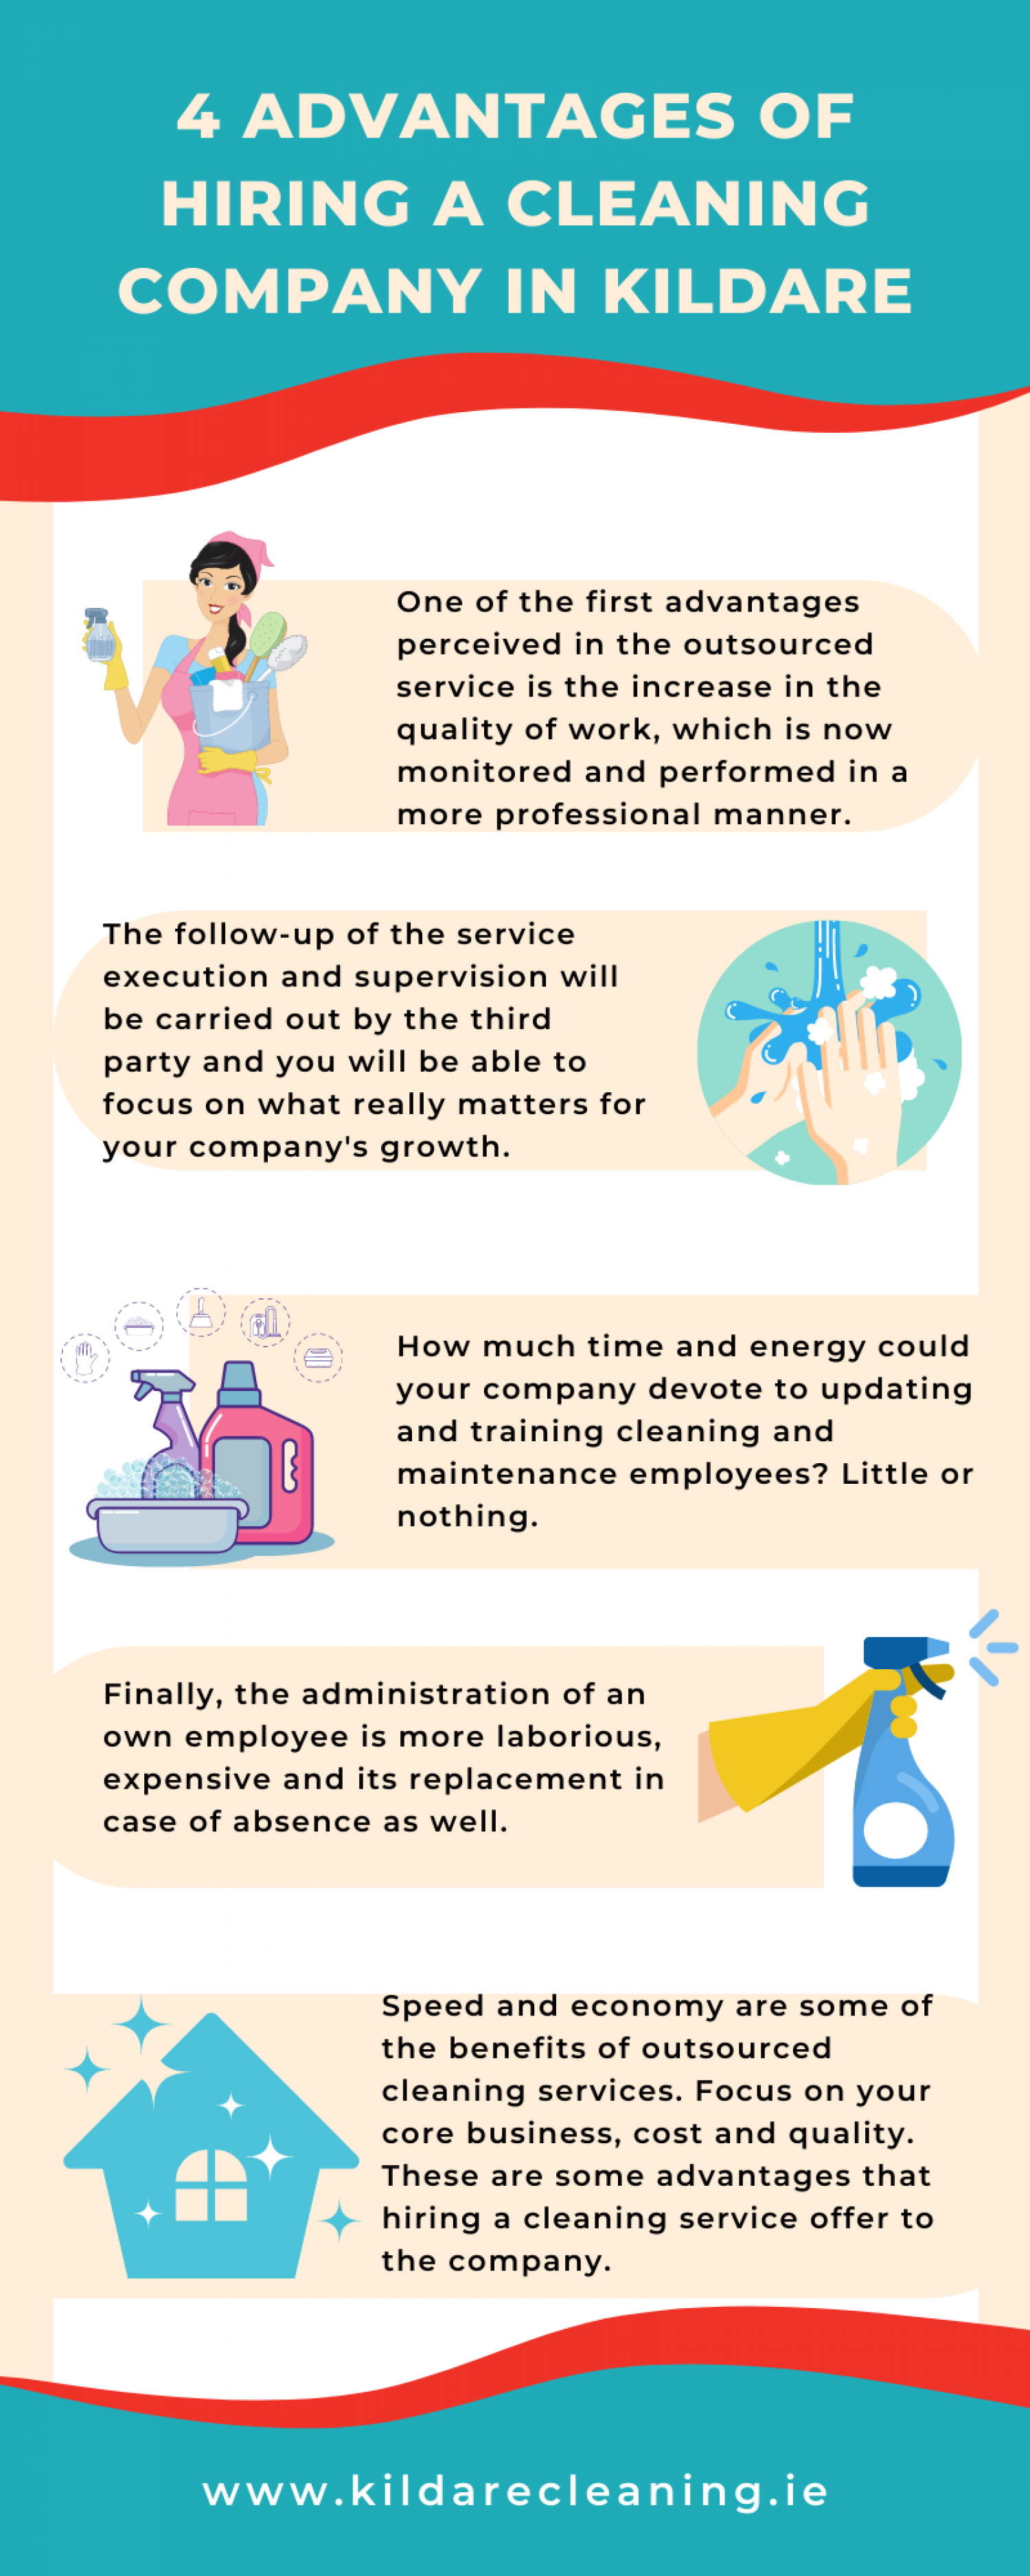 4 Advantages of Hiring a Cleaning Company in Kildare Infographic